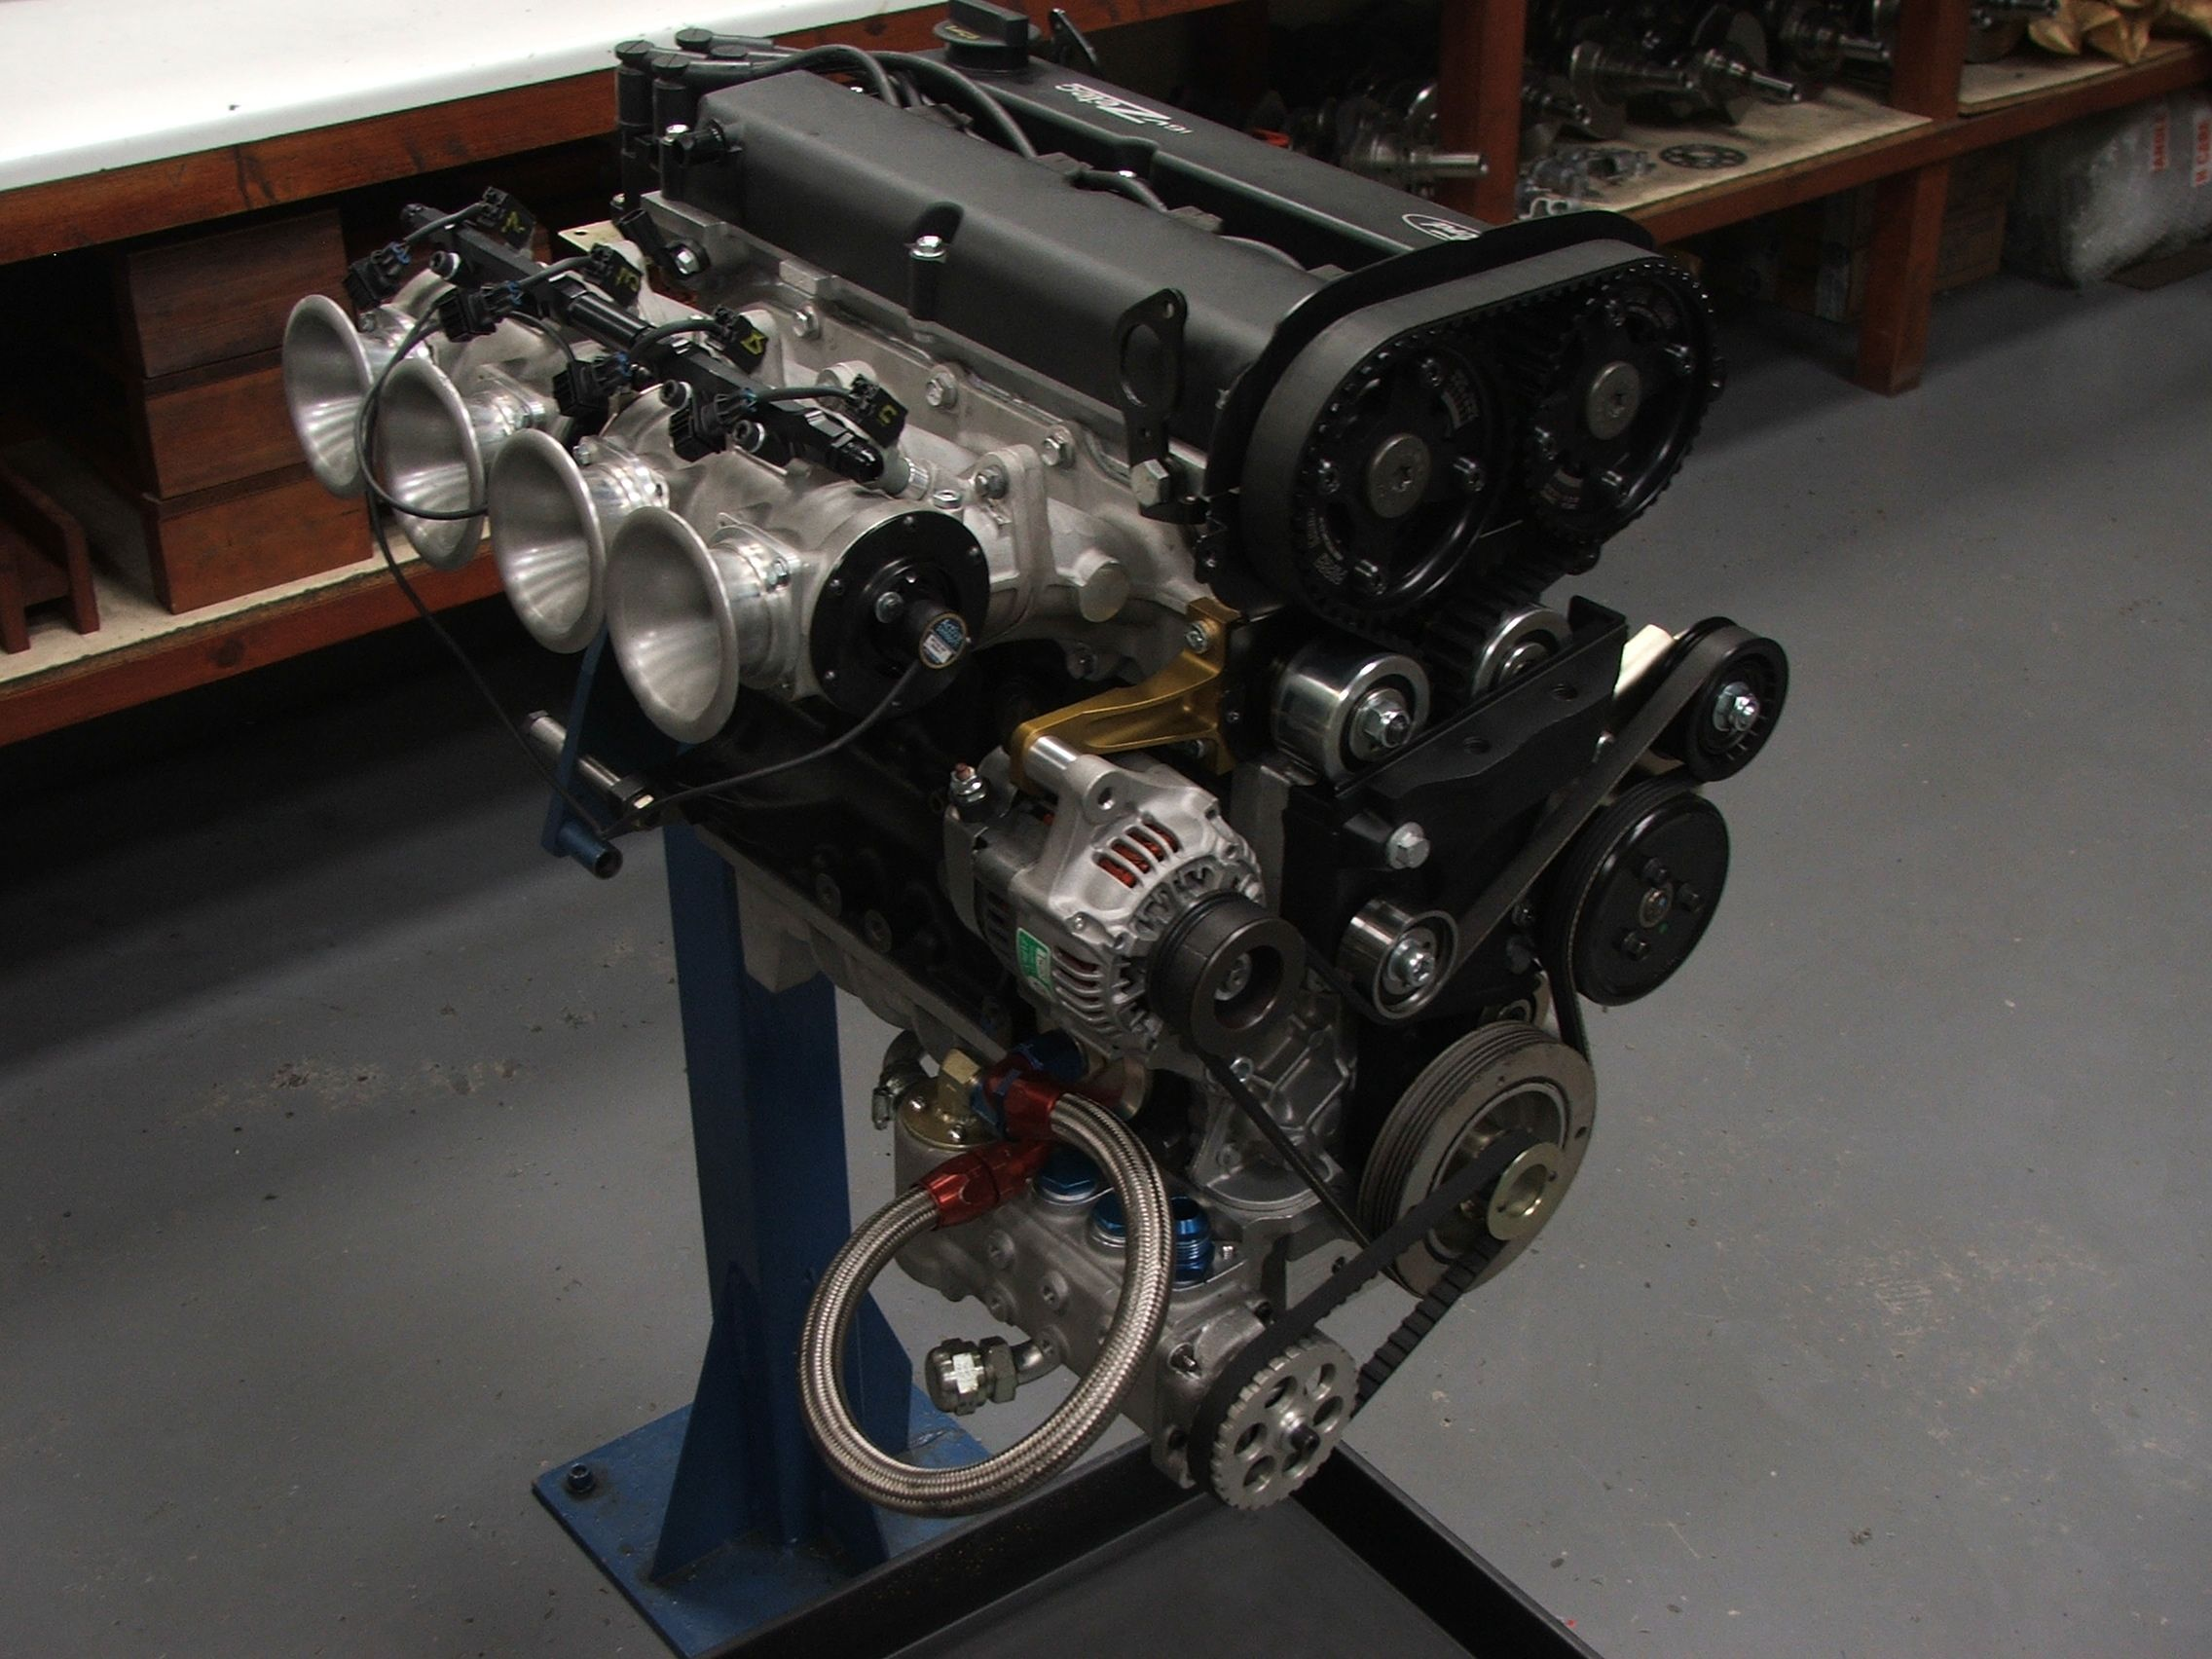 Http Www Bing Com Images Search Q Ford 4 Cylinder Race Engine